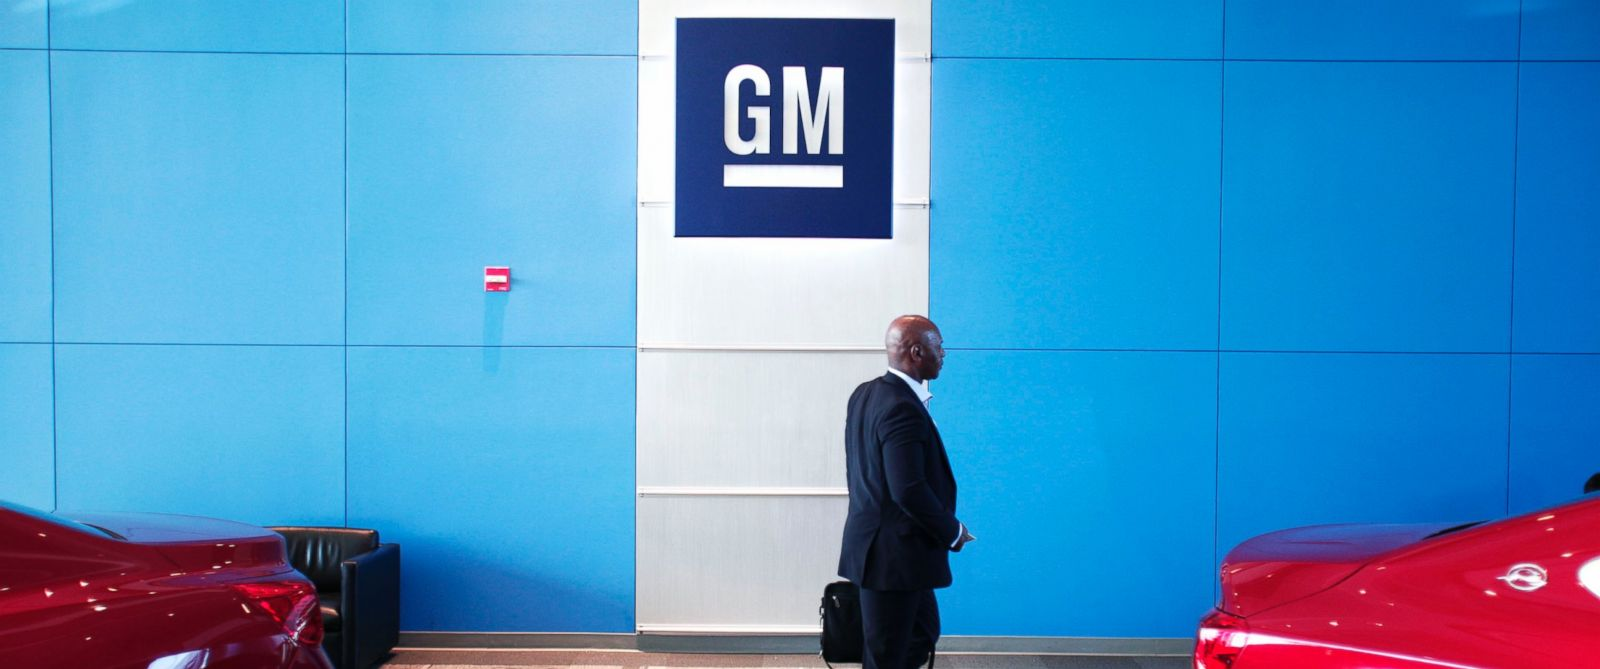 PHOTO: A person walks past the GM logo at the General Motors Technical Center on June 5, 2014 in Warren, Mich.